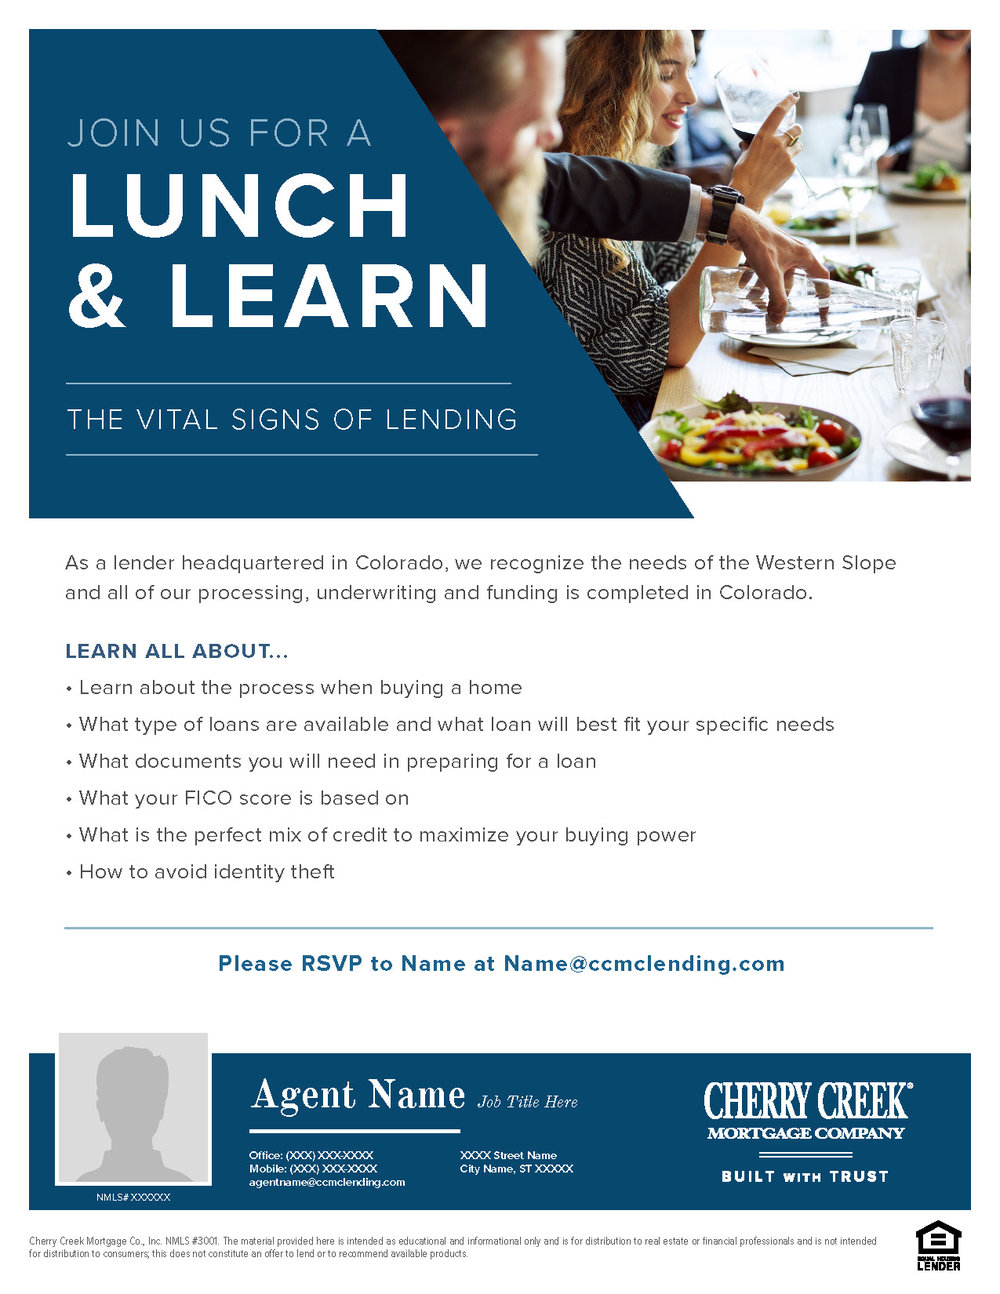 Lunch And Learn Flyer 6.jpg